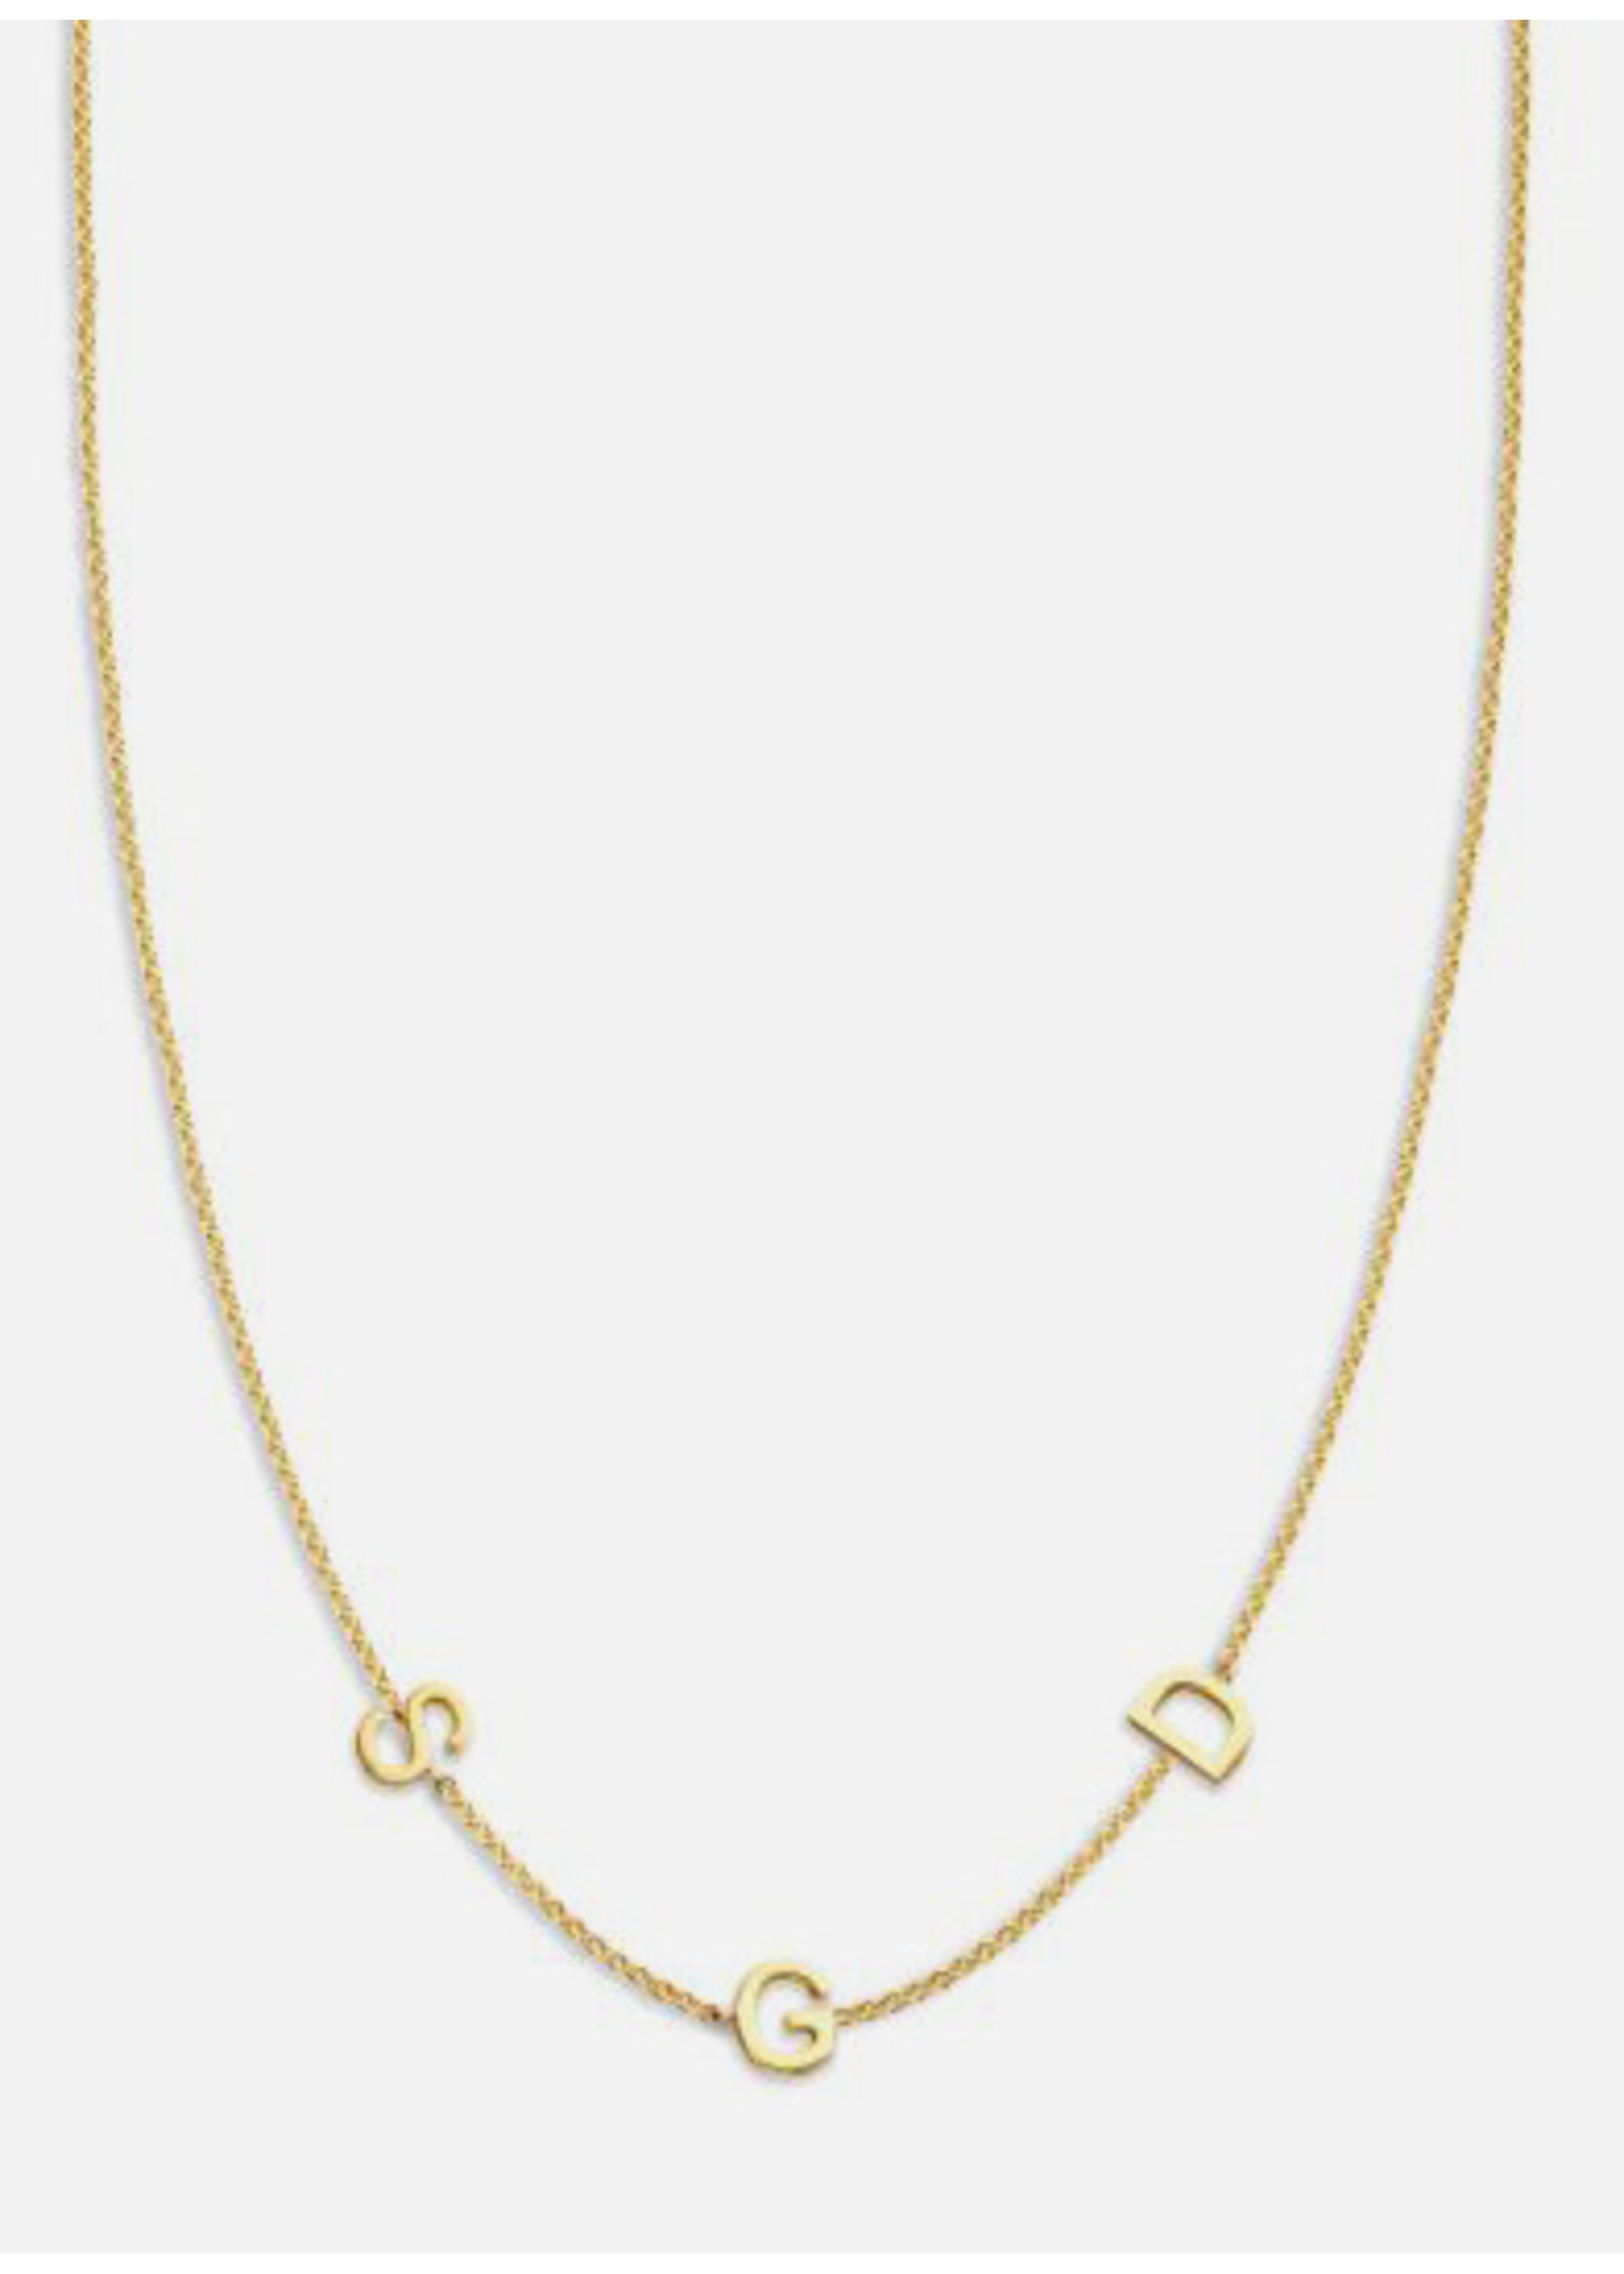 Just Franky Love letter necklace 3 initials